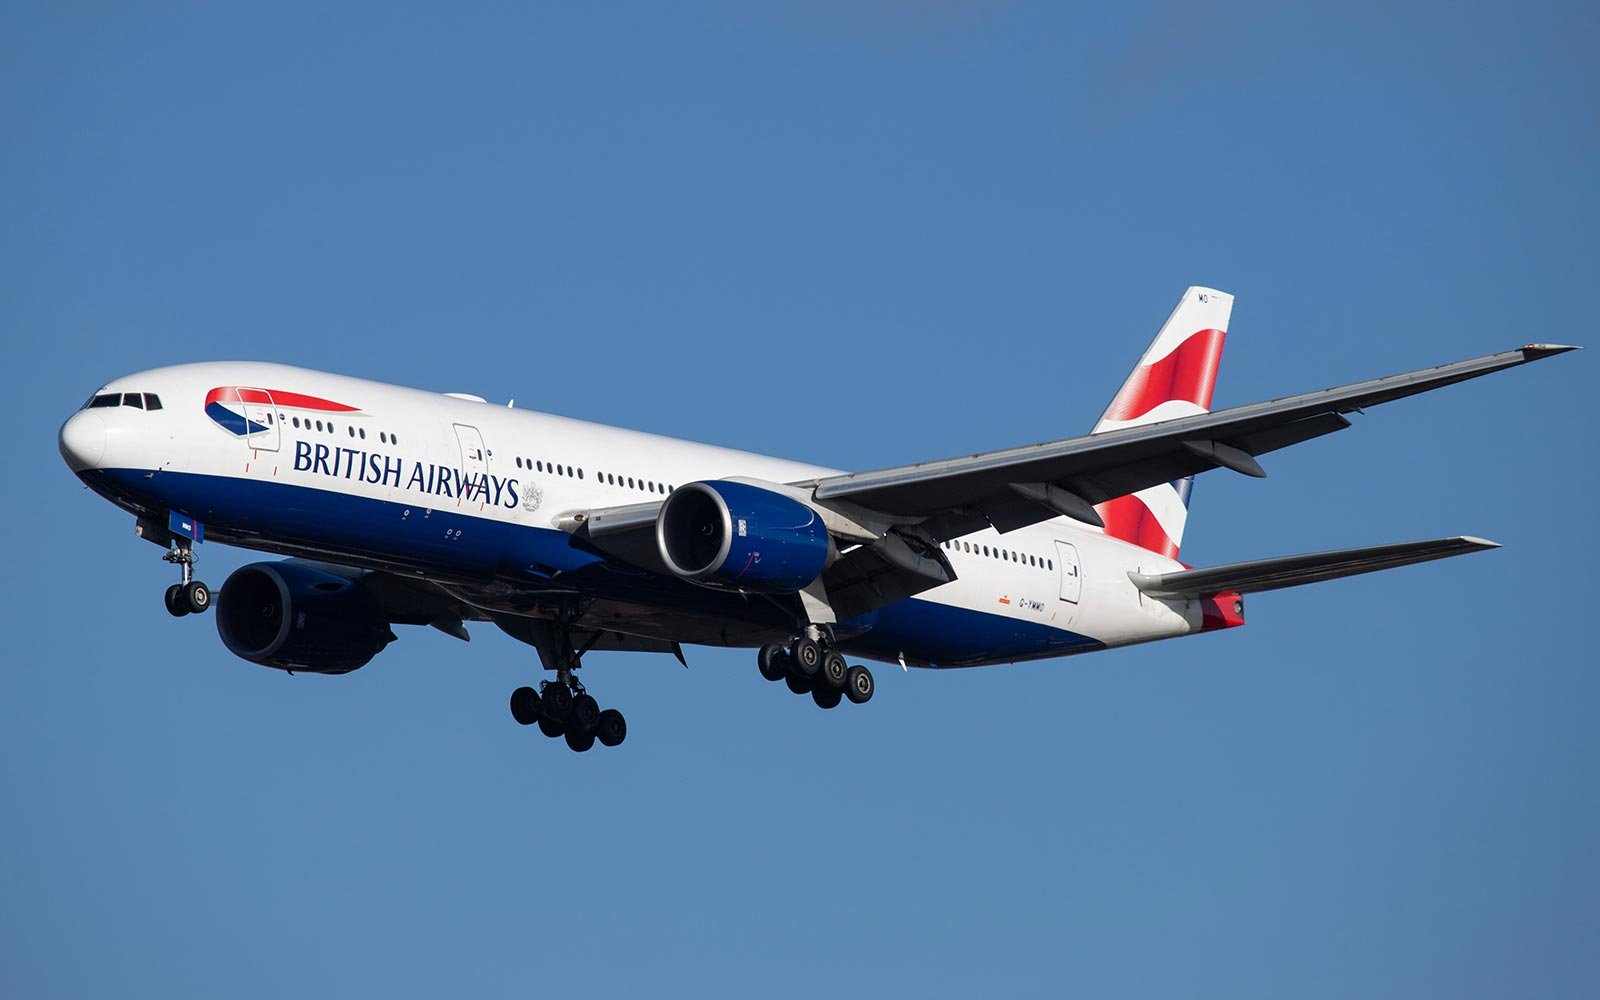 British Airways flight accidentally lands in Scotland instead of Germany